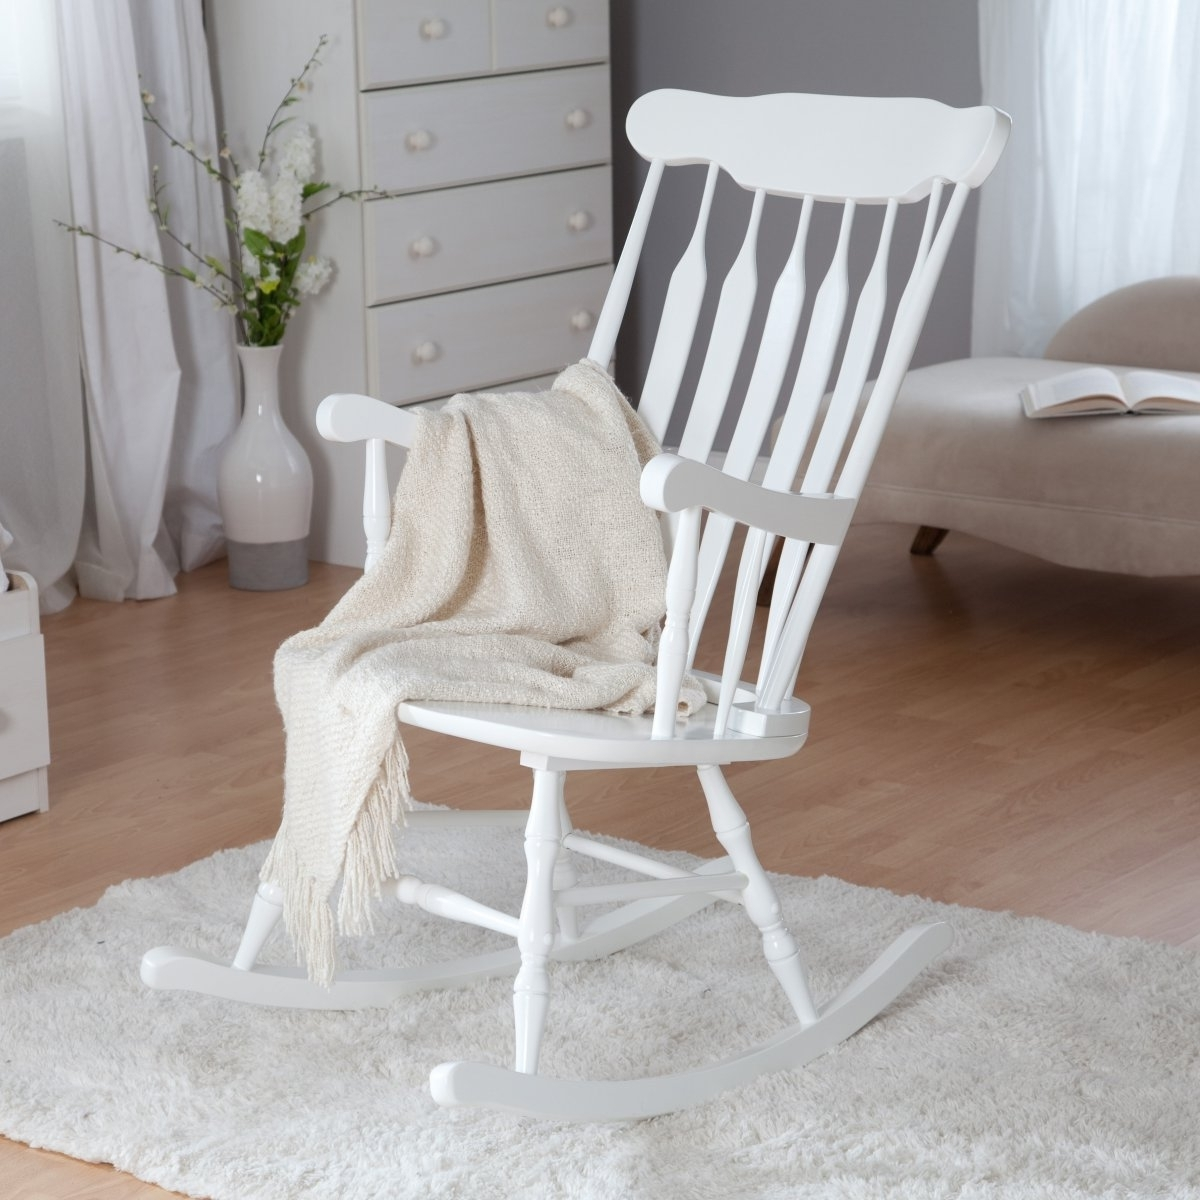 Best And Newest Brilliant Wood Rocking Chair For Nursery With Additional Small Home Within Rocking Chairs For Nursery (View 20 of 20)